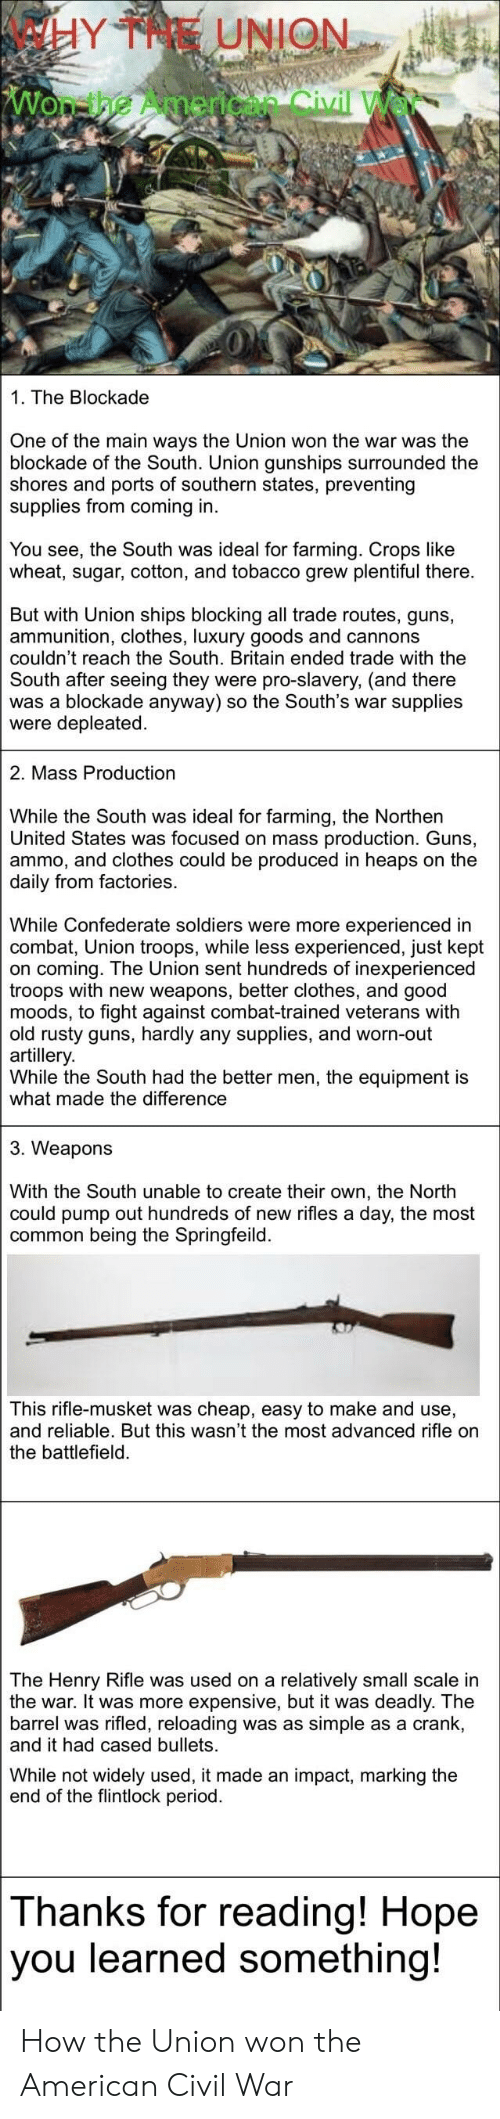 Clothes, Guns, and Period: WHY THE UNION  Won-the American Civil  1. The Blockade  One of the main ways the Union won the war was the  blockade of the South. Union gunships surrounded the  shores and ports of southern states, preventing  supplies from coming in  You see, the South was ideal for farming. Crops like  wheat, sugar, cotton, and tobacco grew plentiful there  But with Union ships blocking all trade routes, guns,  ammunition, clothes, luxury goods and cannons  couldn't reach the South. Britain ended trade with the  South after seeing they were pro-slavery, (and there  was a blockade anyway) so the South's war supplies  were depleated.  2. Mass Production  While the South was ideal for farming, the Northen  United States was focused on mass production. Guns,  ammo, and clothes could be produced in heaps on the  daily from factories  While Confederate soldiers were more experi  combat, Union troops, while less experienced, just kept  on coming. The Union sent hundreds of inexperienced  troops with new weapons, better clothes, and good  moods, to fight against combat-trained veterans with  old rusty guns, hardly any supplies, and worn-out  artillery  While the South had the better men, the equipment is  what made the difference  3. Weapons  With the South unable to create their own, the North  could pump out hundreds of new rifles a day, the most  common being the Springfeild.  This rifle-musket was cheap, easy to make and use,  and reliable. But this wasn't the most advanced rifle on  the battlefield  The Henry Rifle was used on a relatively small scale in  the war. It was more expensive, but it was deadly. The  barrel was rifled, reloading was as simple as a crank  and it had cased bullets  While not widely used, it made an impact, marking the  end of the flintlock period  Thanks for reading! Hope  you learned something! How the Union won the American Civil War